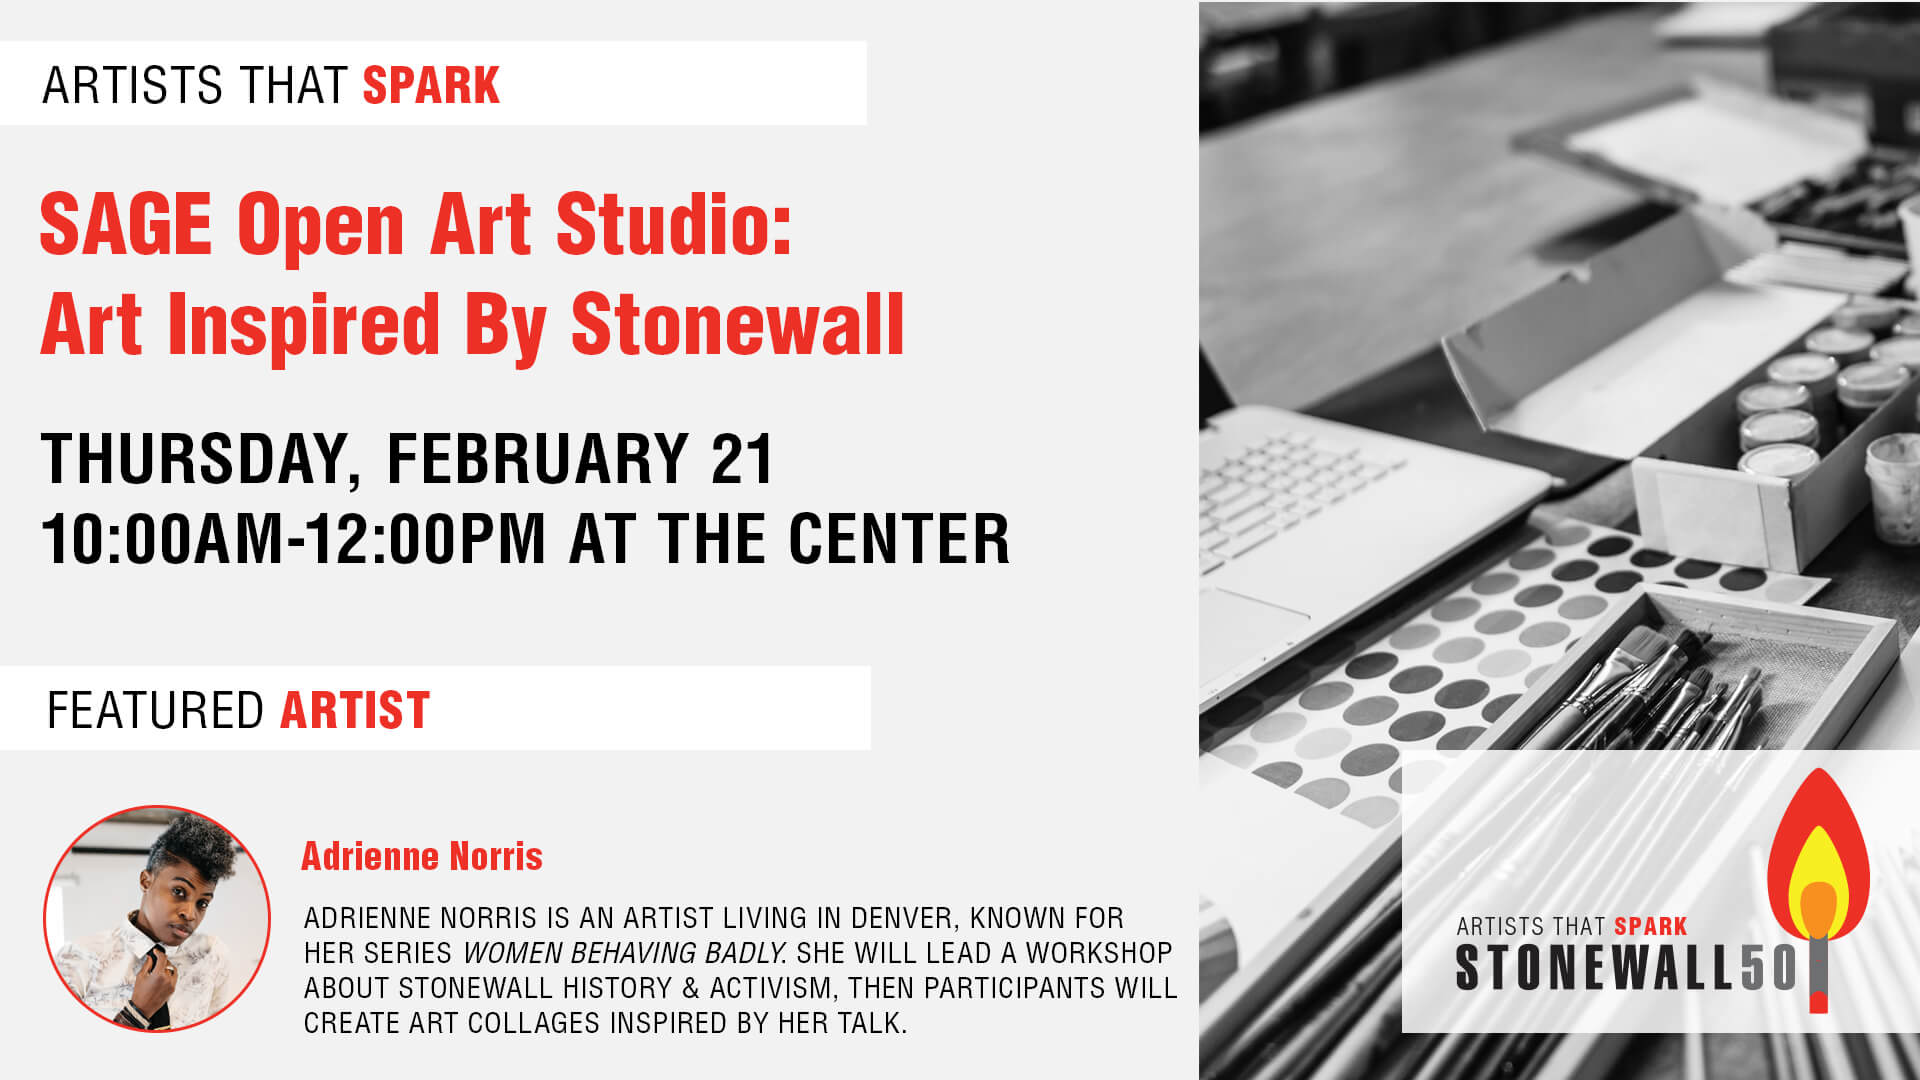 Artists That Spark: SAGE Open Art Studio Art Inspired by Stonewall